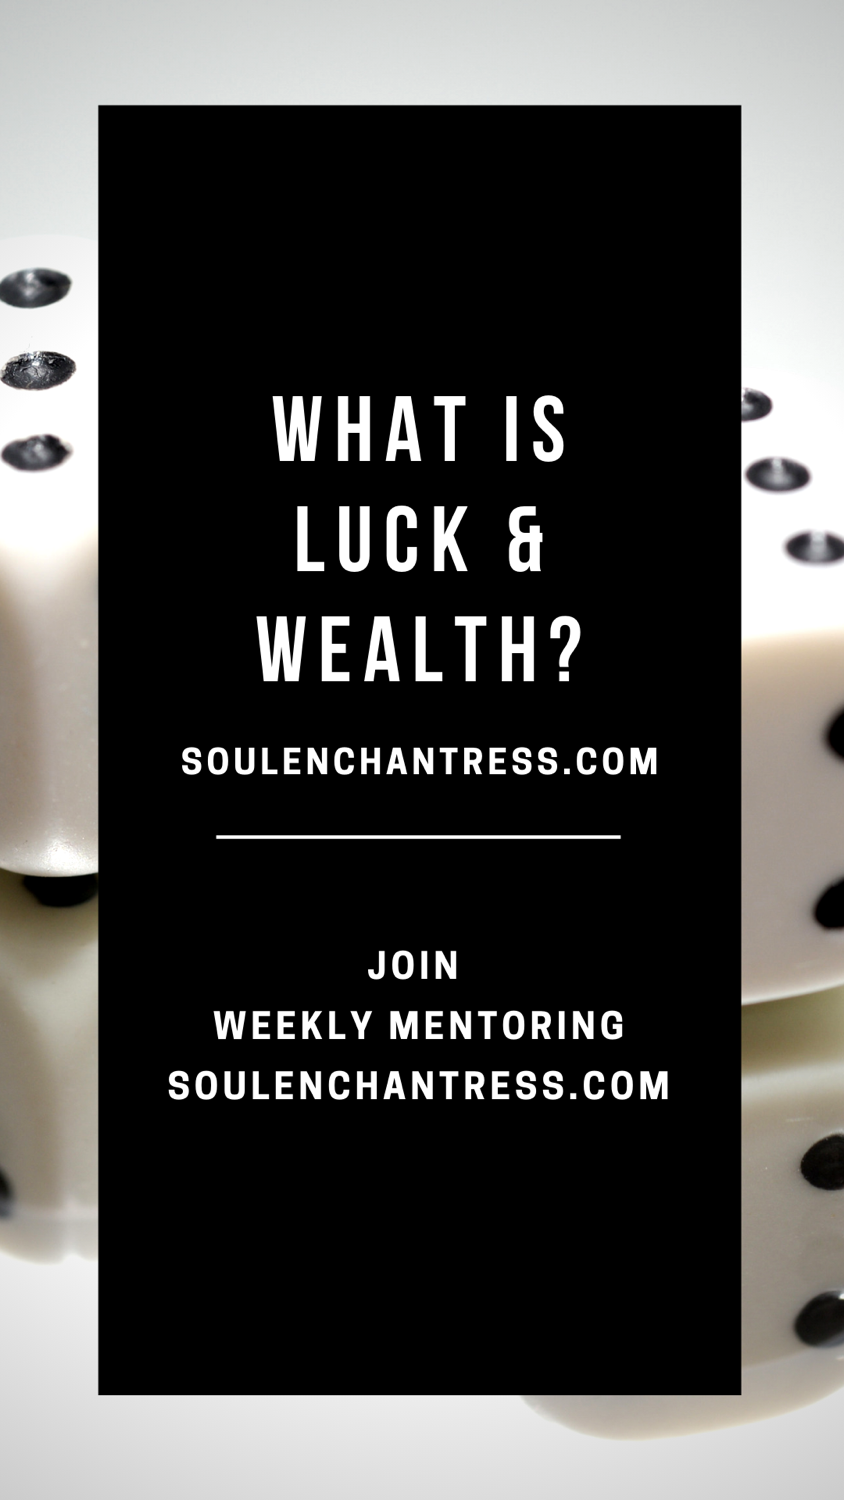 how to become lucky, how to retire early, soul enchantress